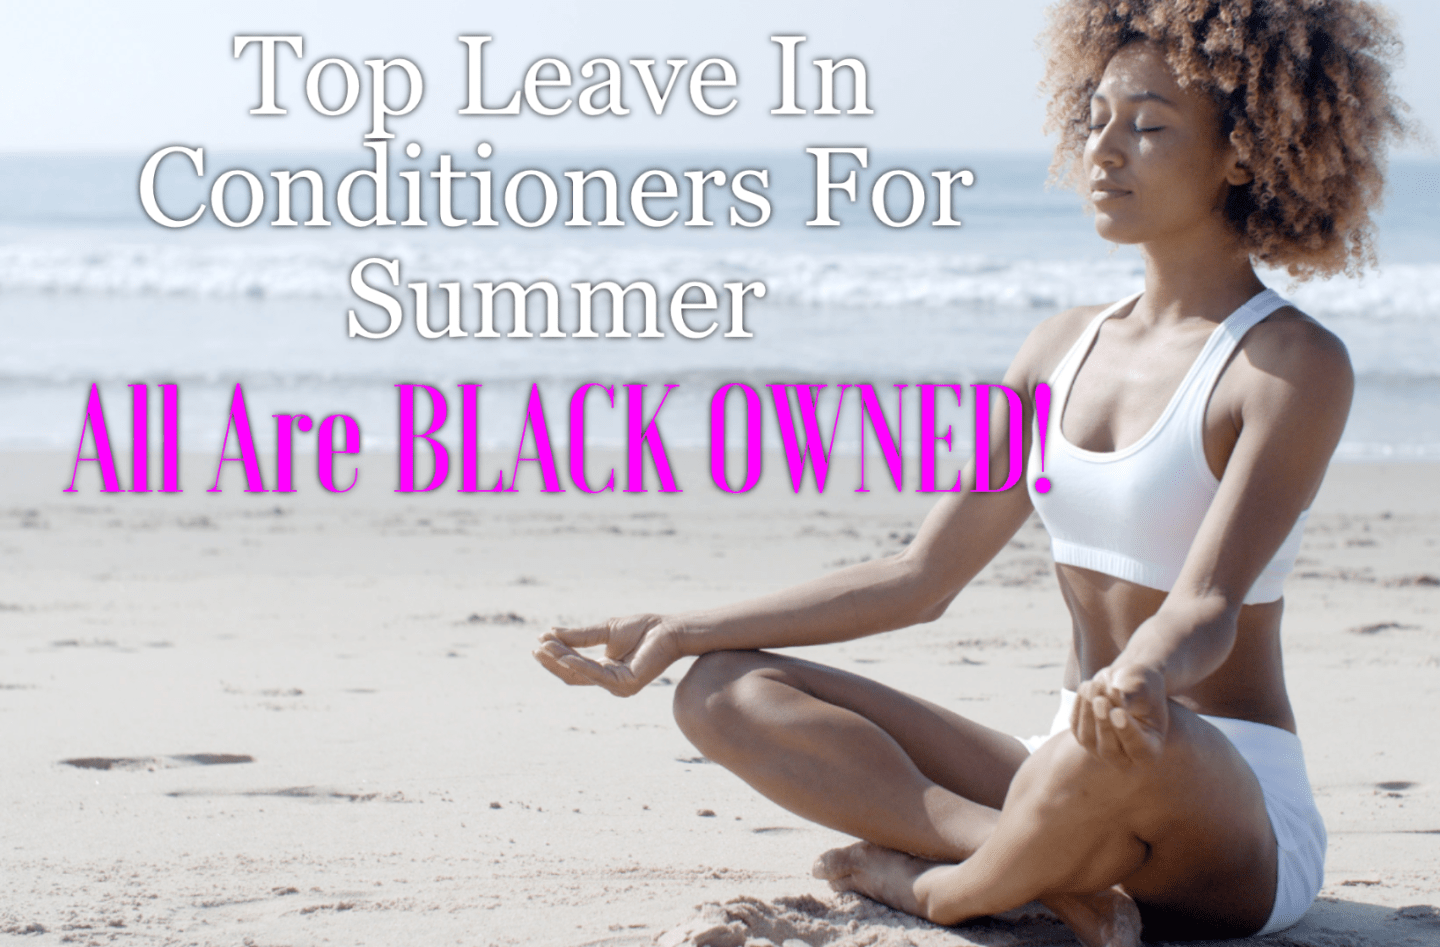 Leave in conditioner is necessary all year long but crucial in hot and dry summers. Check out our list of the top ones that are also black owned!